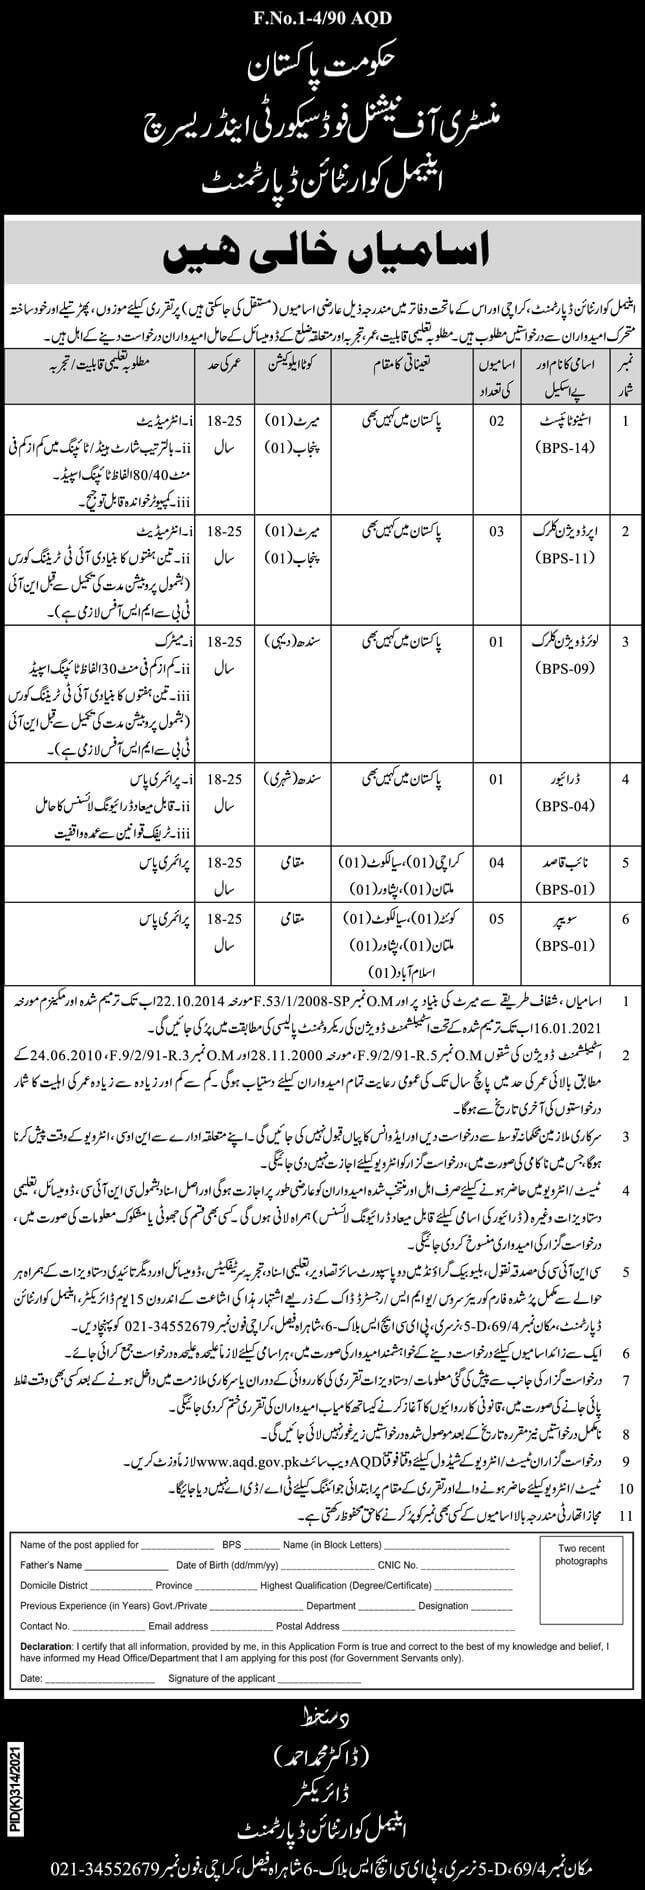 Ministry of National Food Security and Research Jobs 2021   Pak New Jobs